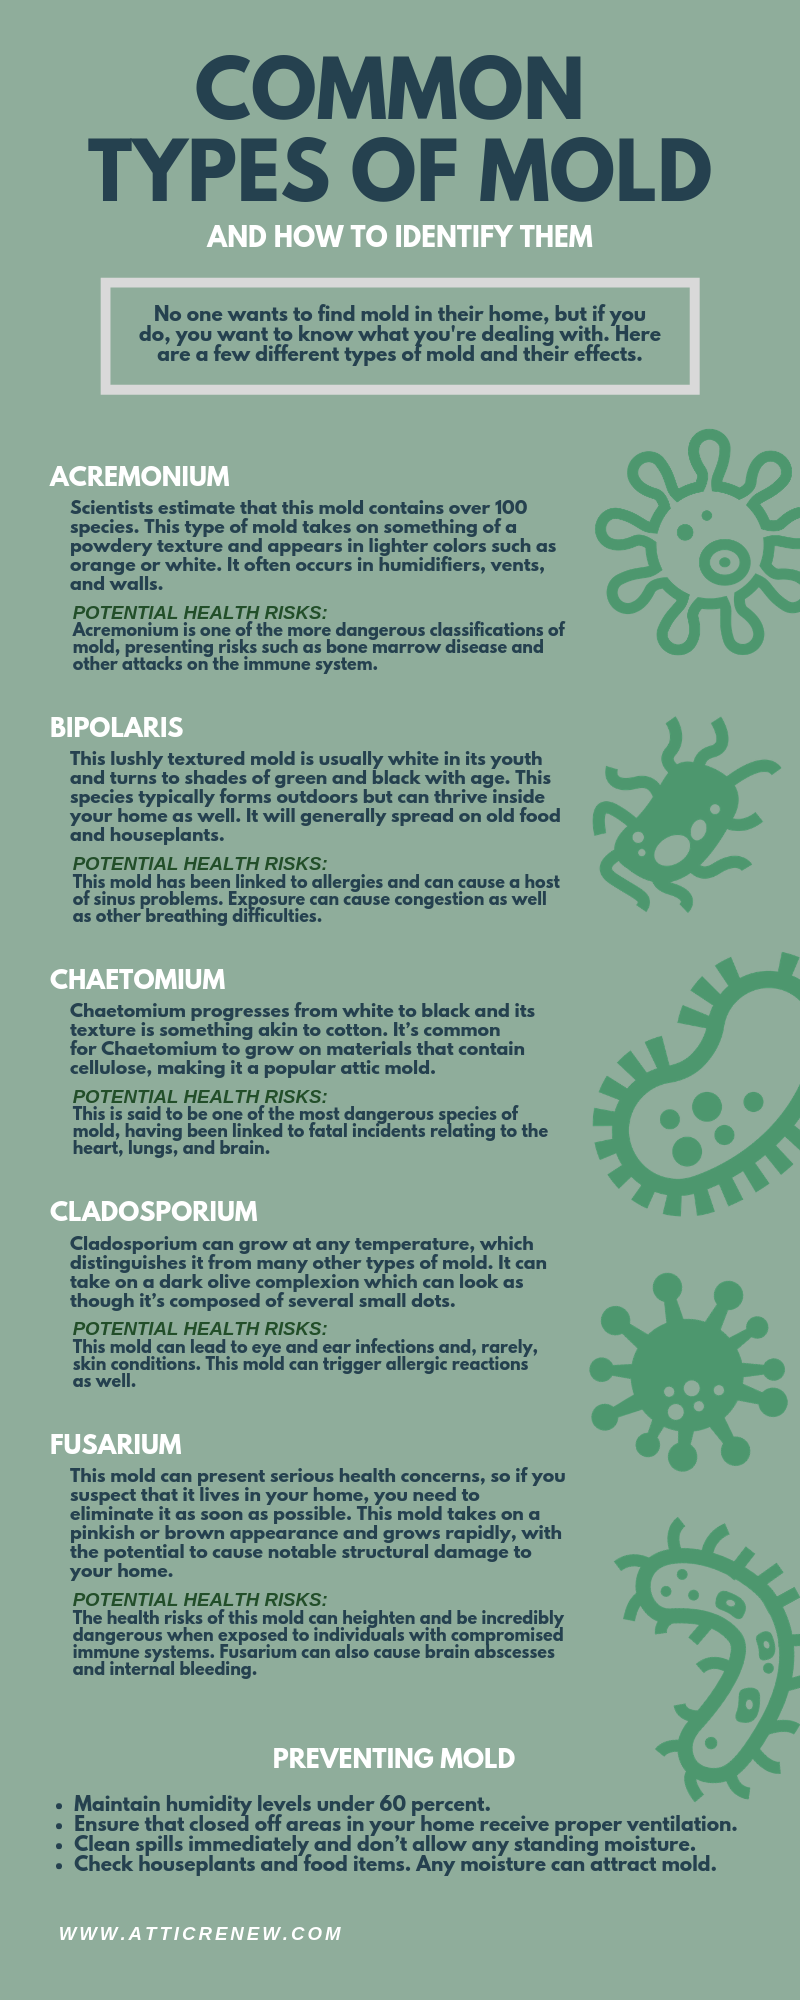 Common Types of Mold and How to Identify Them infographic